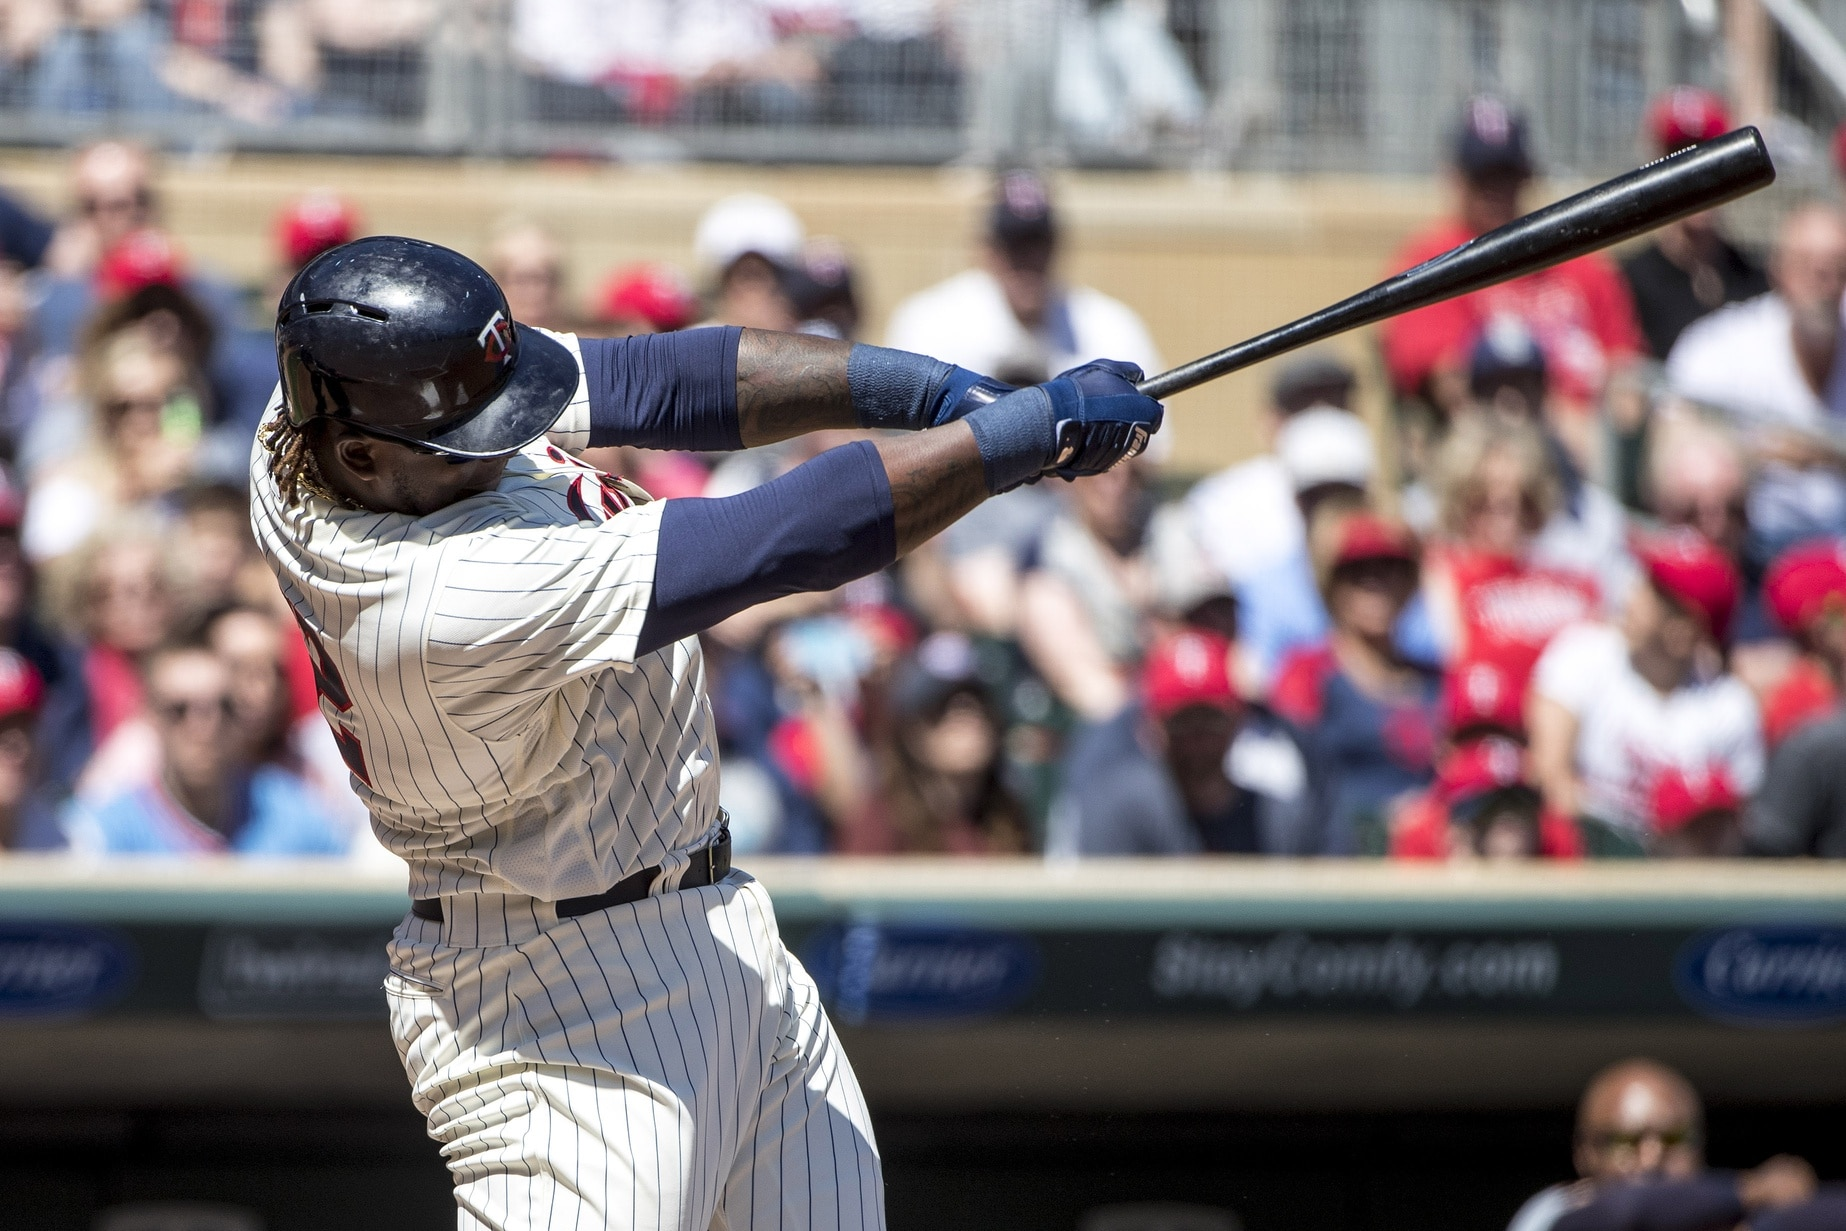 Apr 22, 2017; Minneapolis, MN, USA; Minnesota Twins first baseman Miguel Sano (22) hits a double in the first inning against the Detroit Tigers at Target Field. Mandatory Credit: Jesse Johnson-USA TODAY Sports